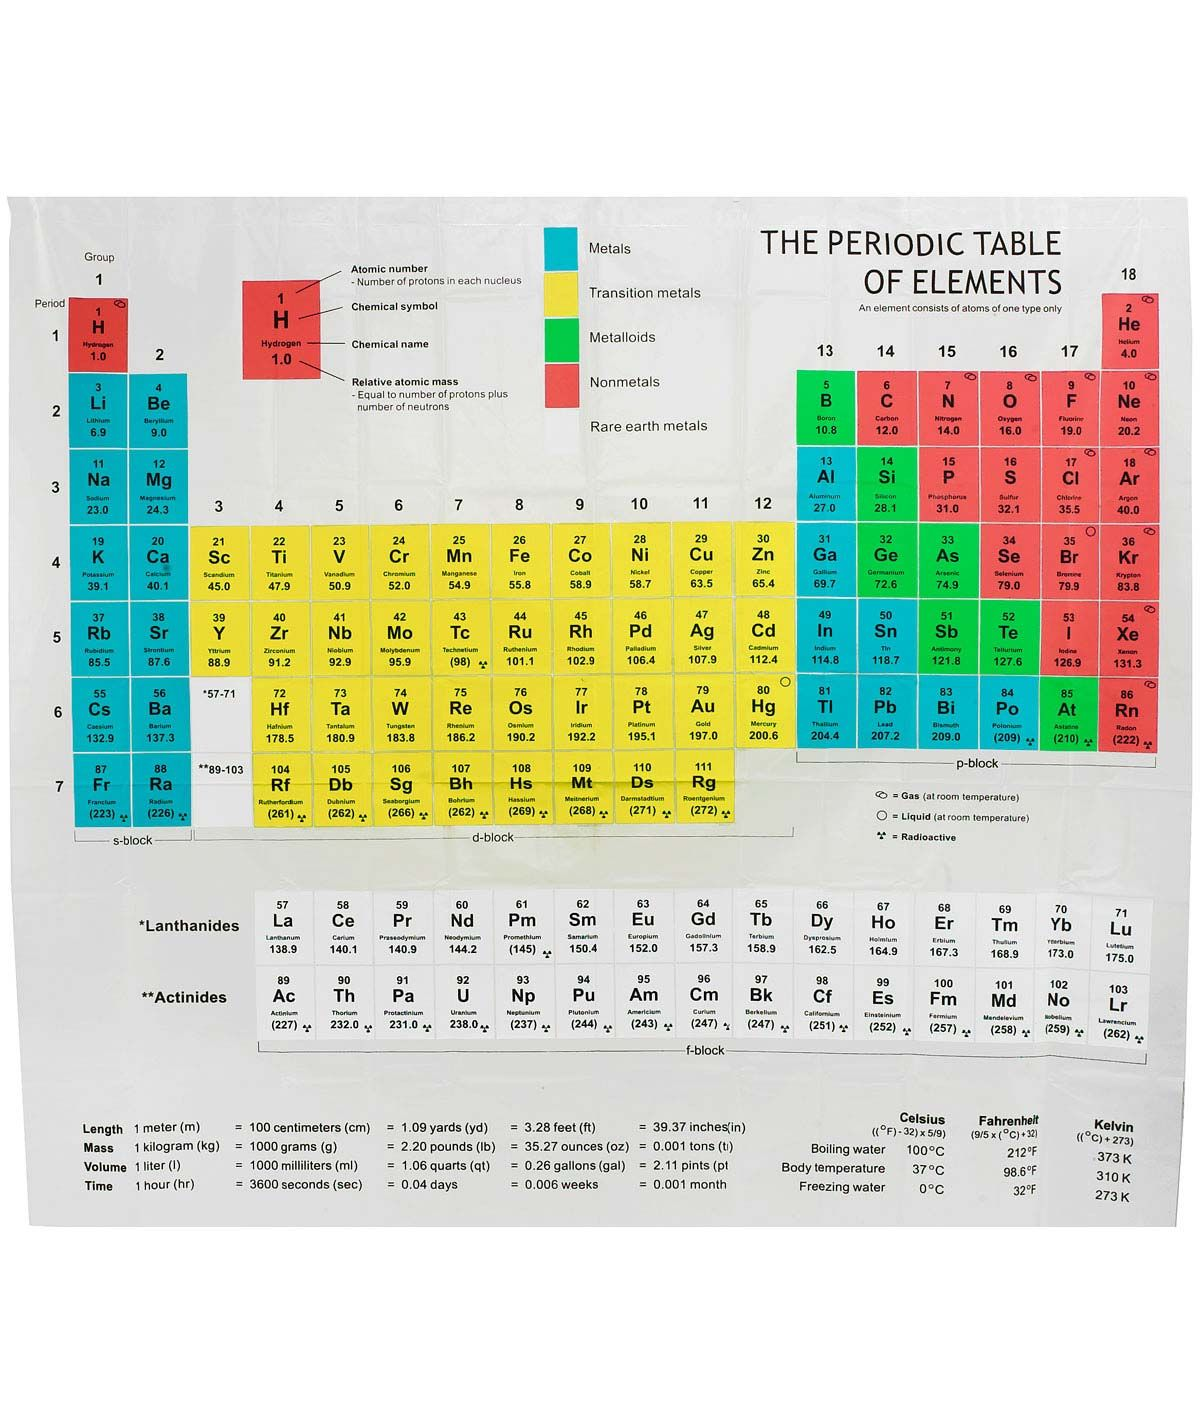 Periodic Table Shower Curtain | Periodic table, Bathroom accessories ...